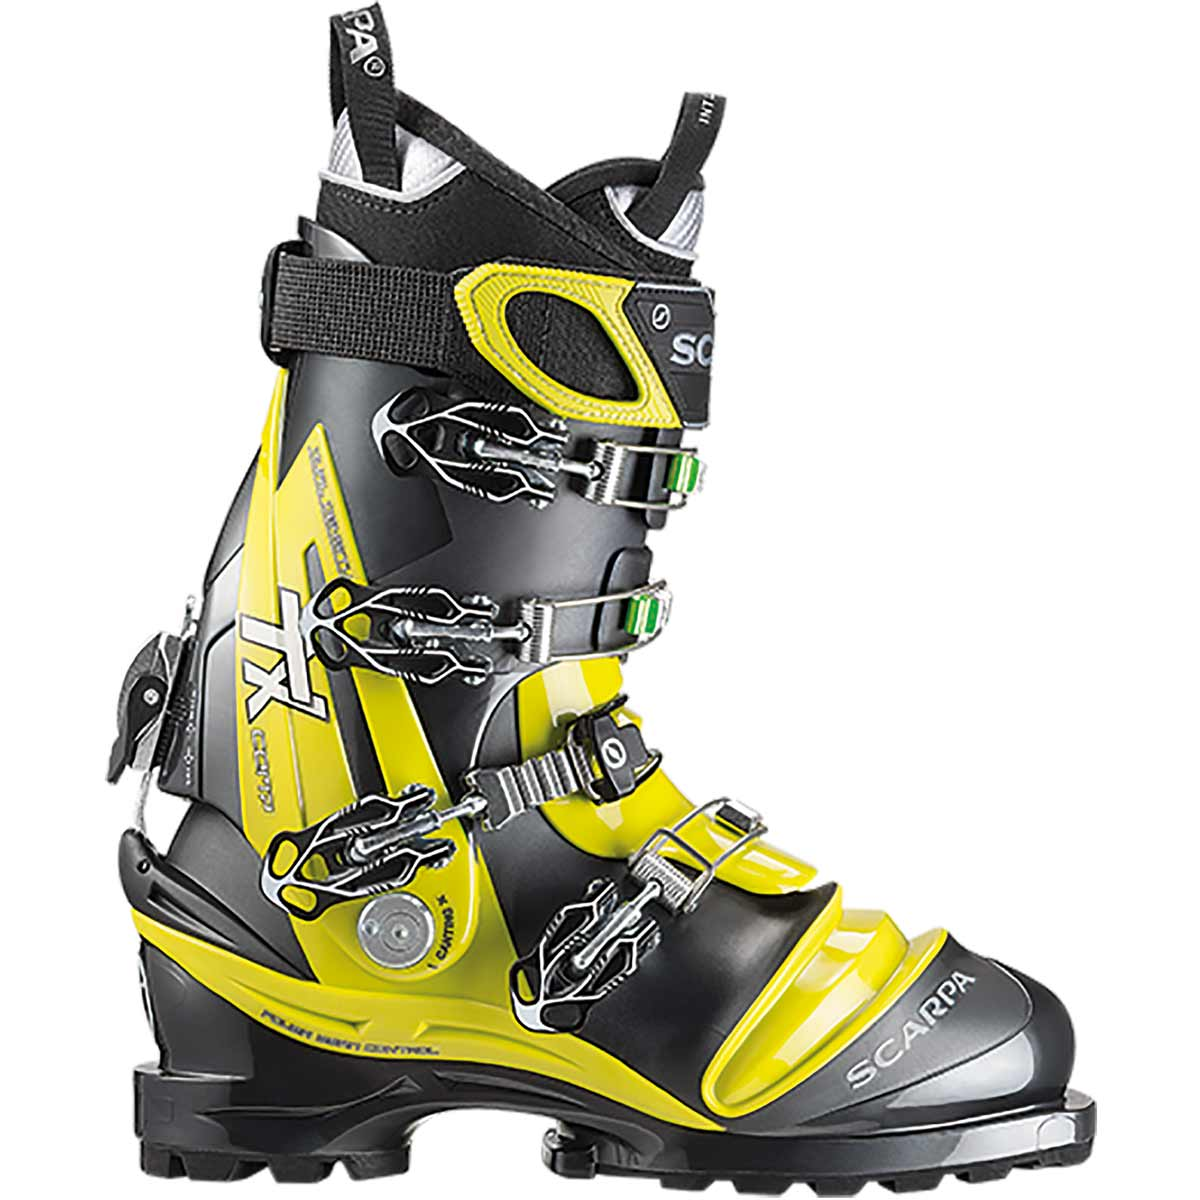 Scarpa TX Comp Ski Boots On Sale